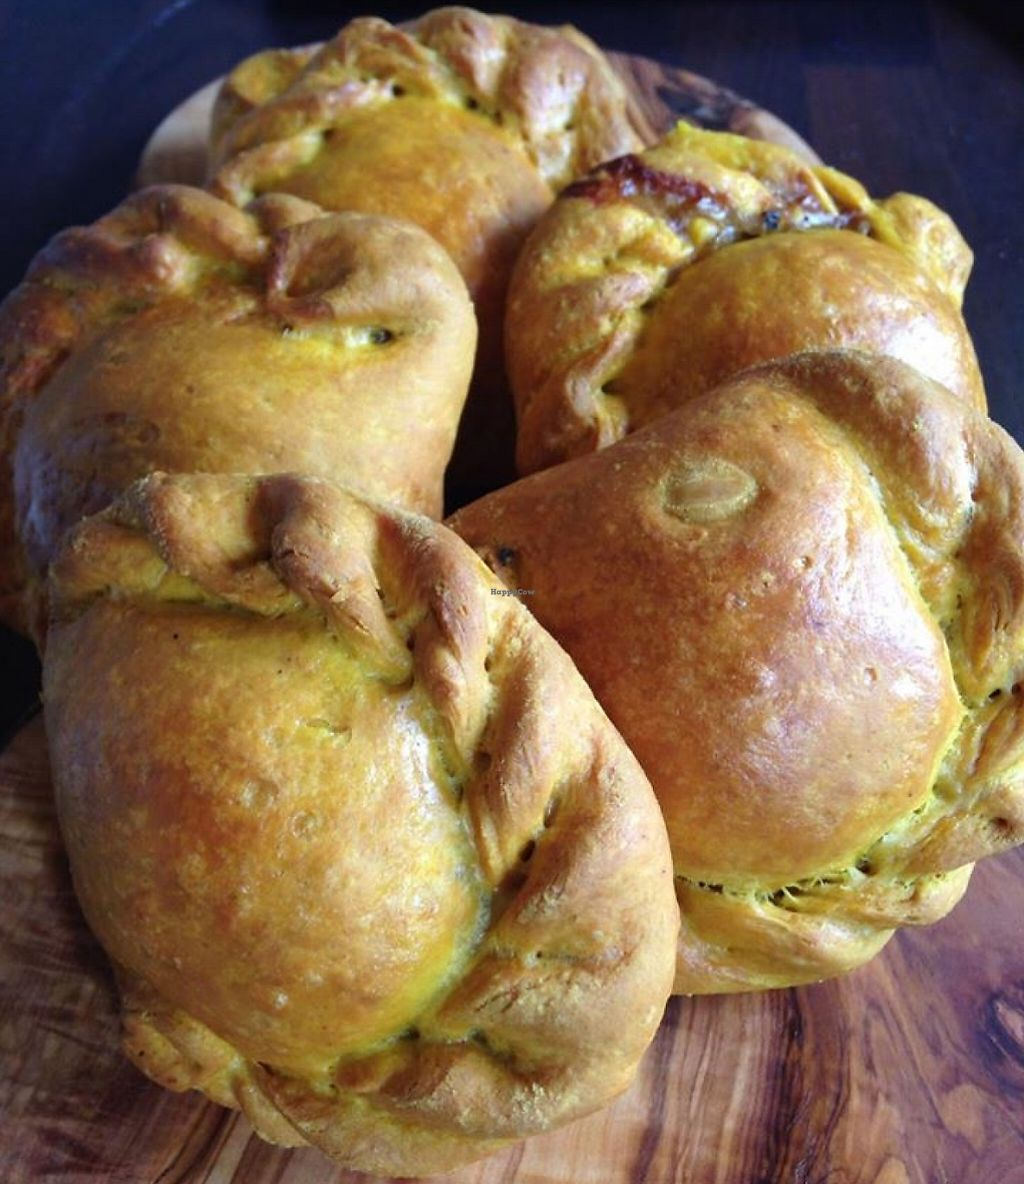 """Photo of Bread and Banjo Bakery  by <a href=""""/members/profile/gingergrace"""">gingergrace</a> <br/>Vegan Malaysian Curry Puffs!  <br/> September 19, 2015  - <a href='/contact/abuse/image/58353/240265'>Report</a>"""